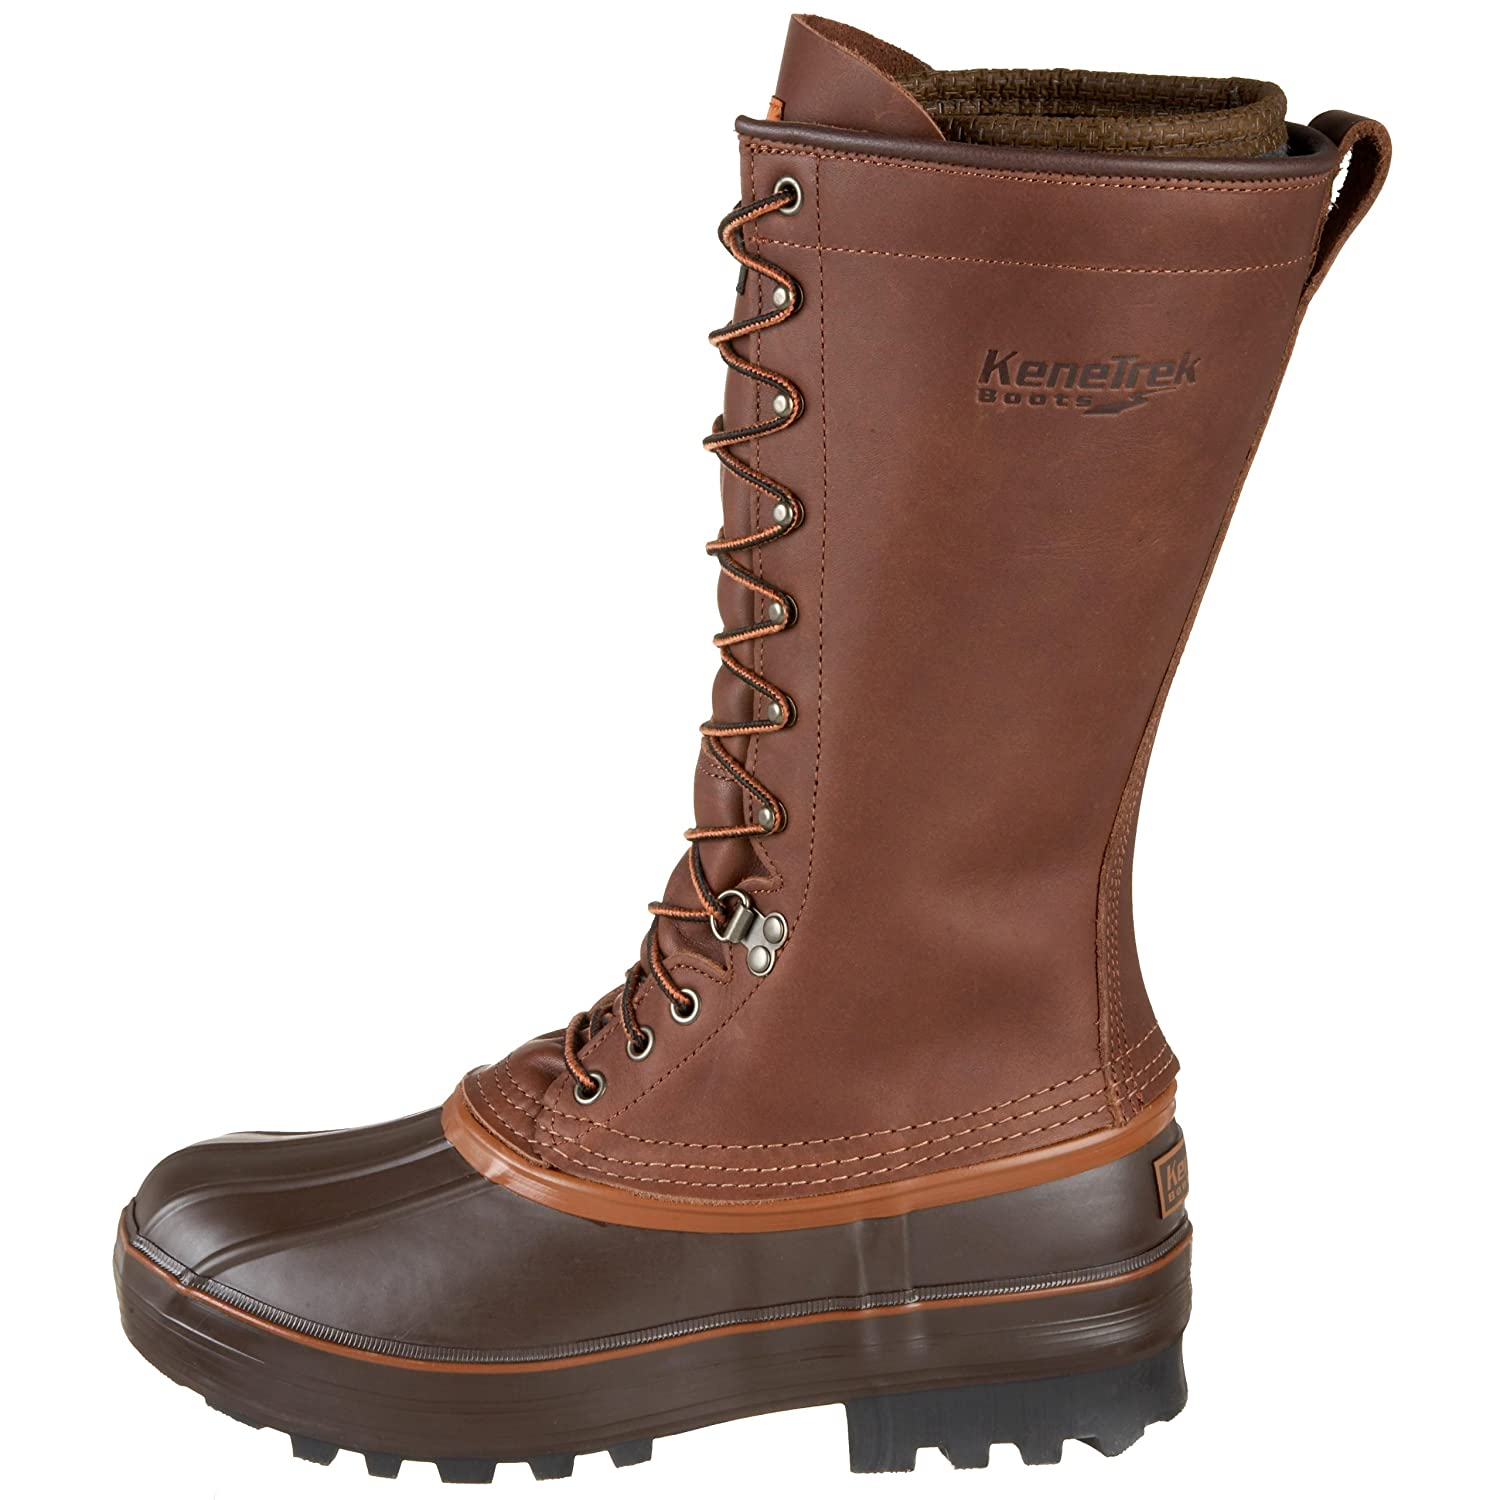 Kenetrek Unisex 13 Inch Grizzly Insulated Boot B001KQ1HA0 10 M US|Brown